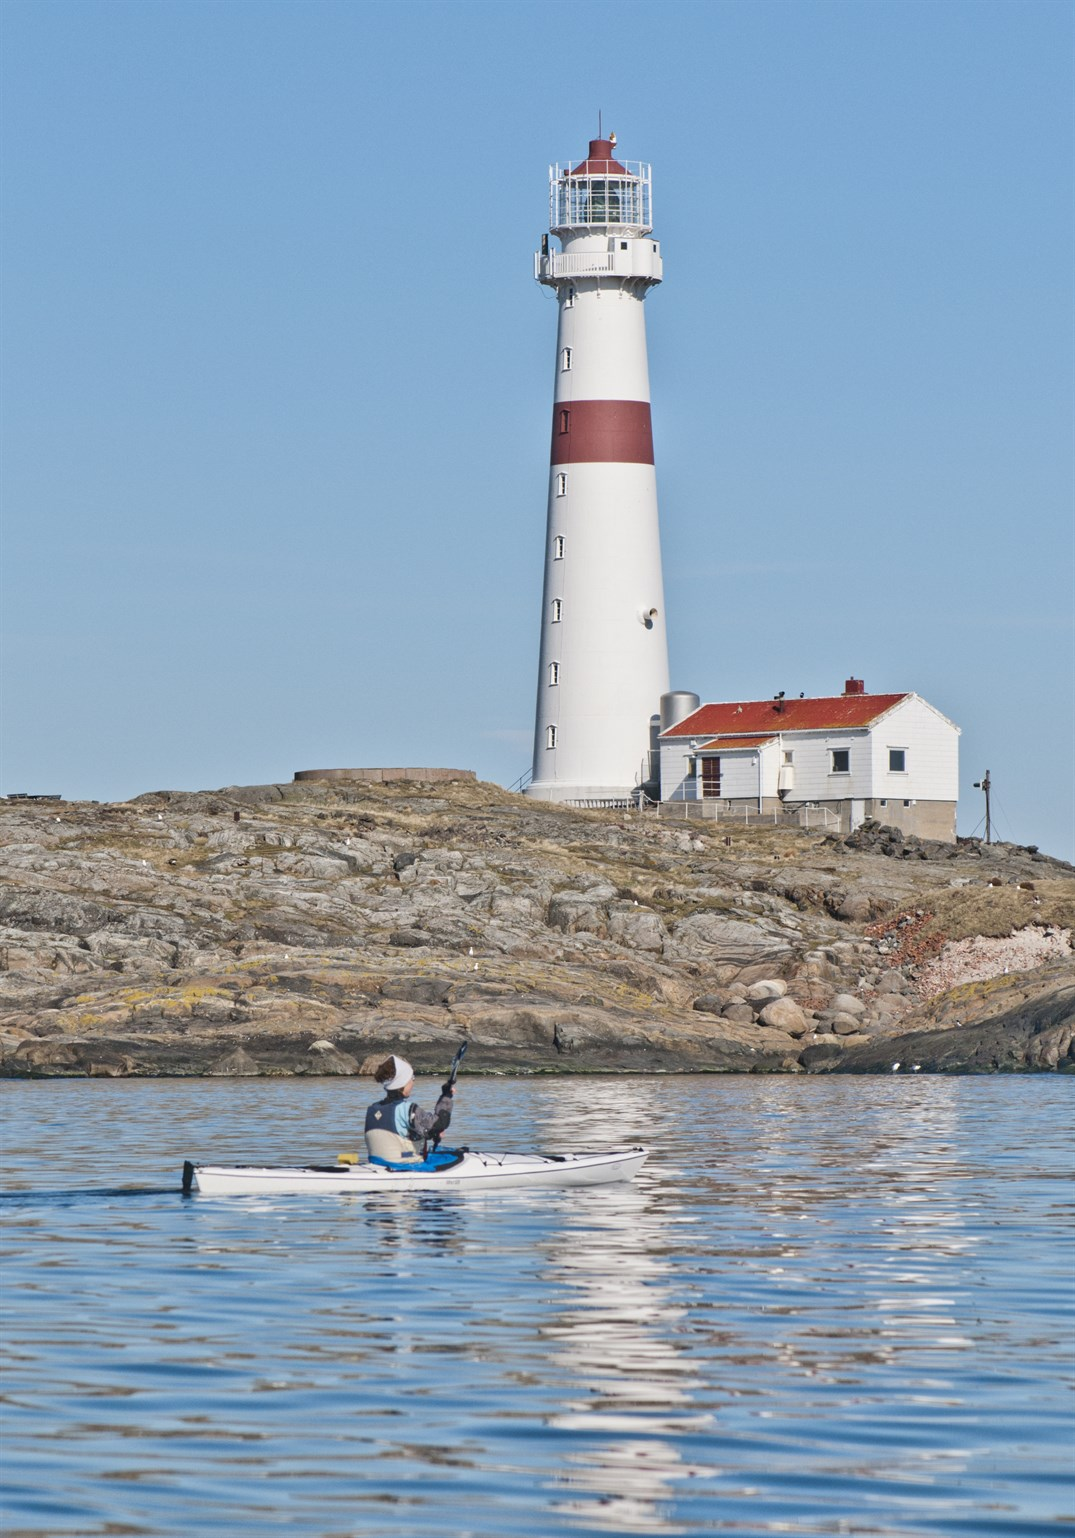 kayaking-in-the-coastal-archipelago-park-of-the-south-coast-sorlandet-of-norway-store-torungen-lighthouse_92f5-1538x2200px